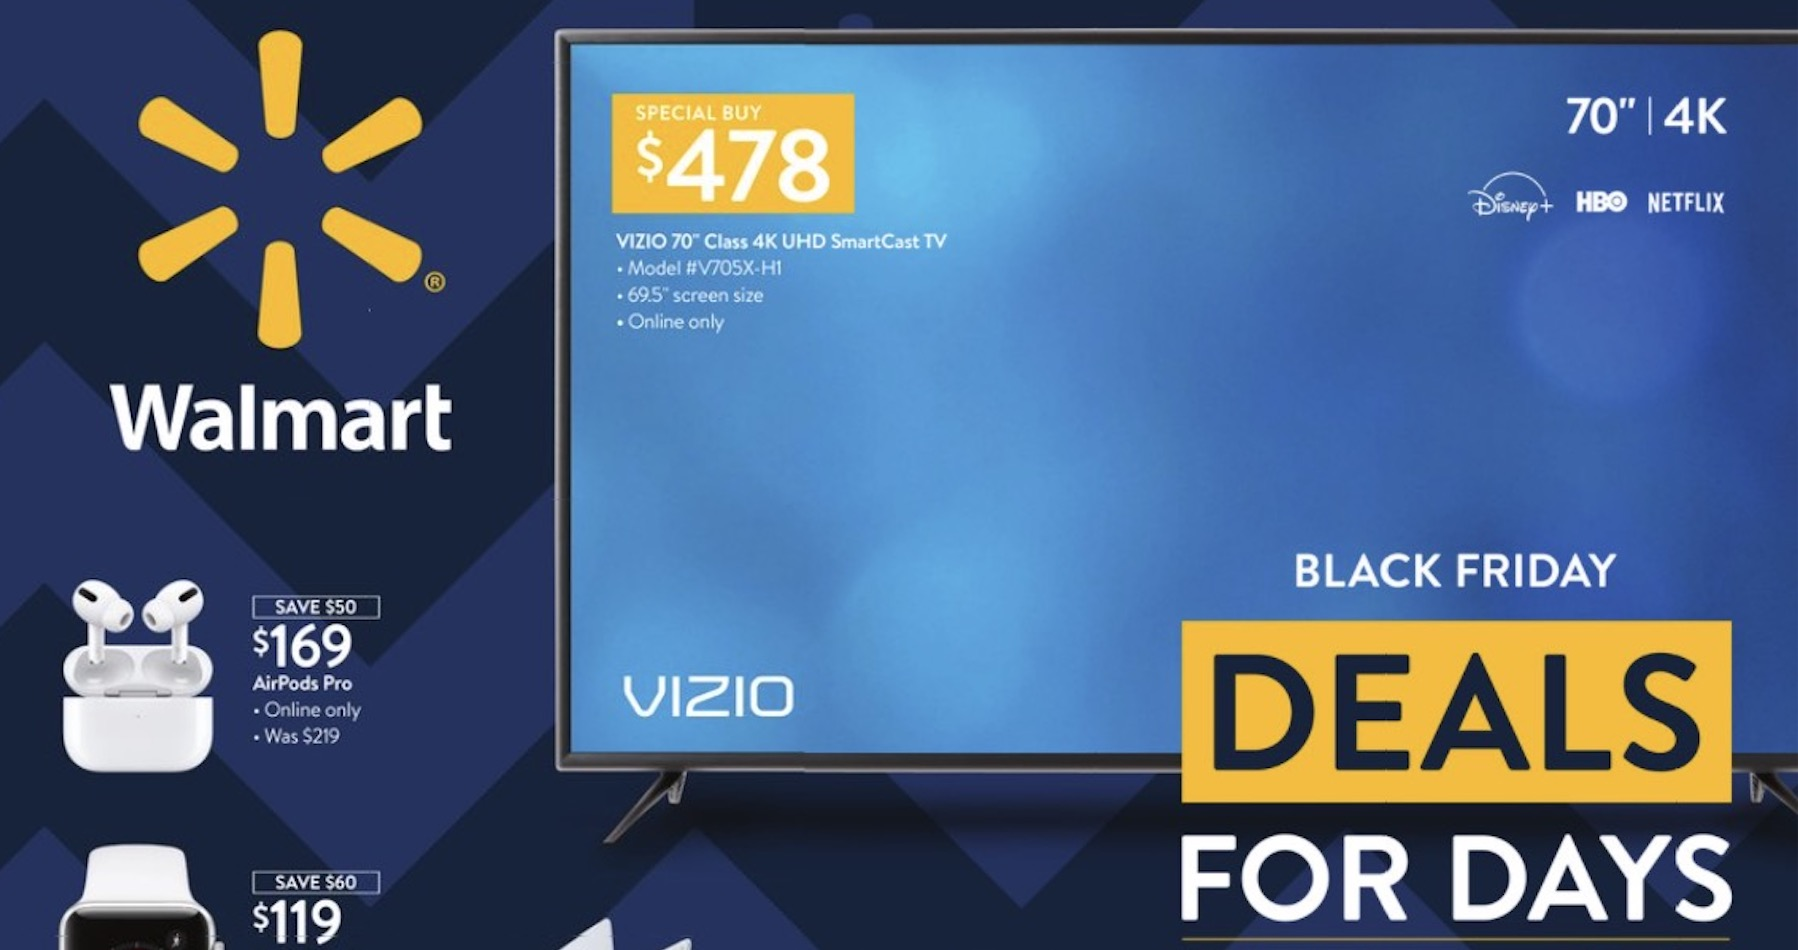 Walmart Black Friday Here Are The Best Deals You Can Find Right Now Online Wgno